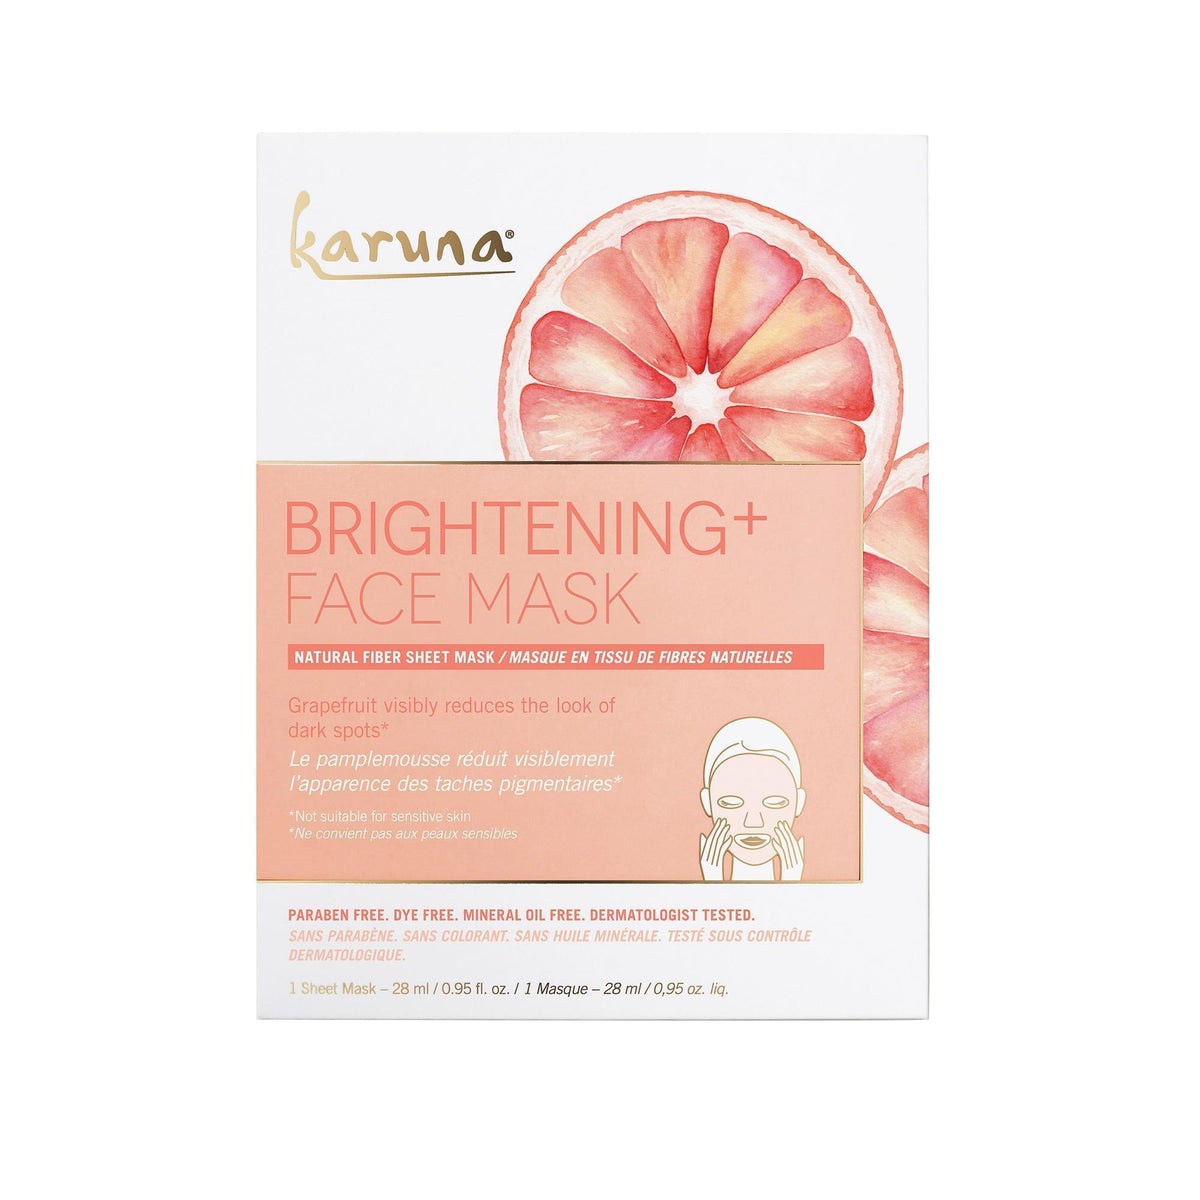 Karuna Brightening+ Face Mask